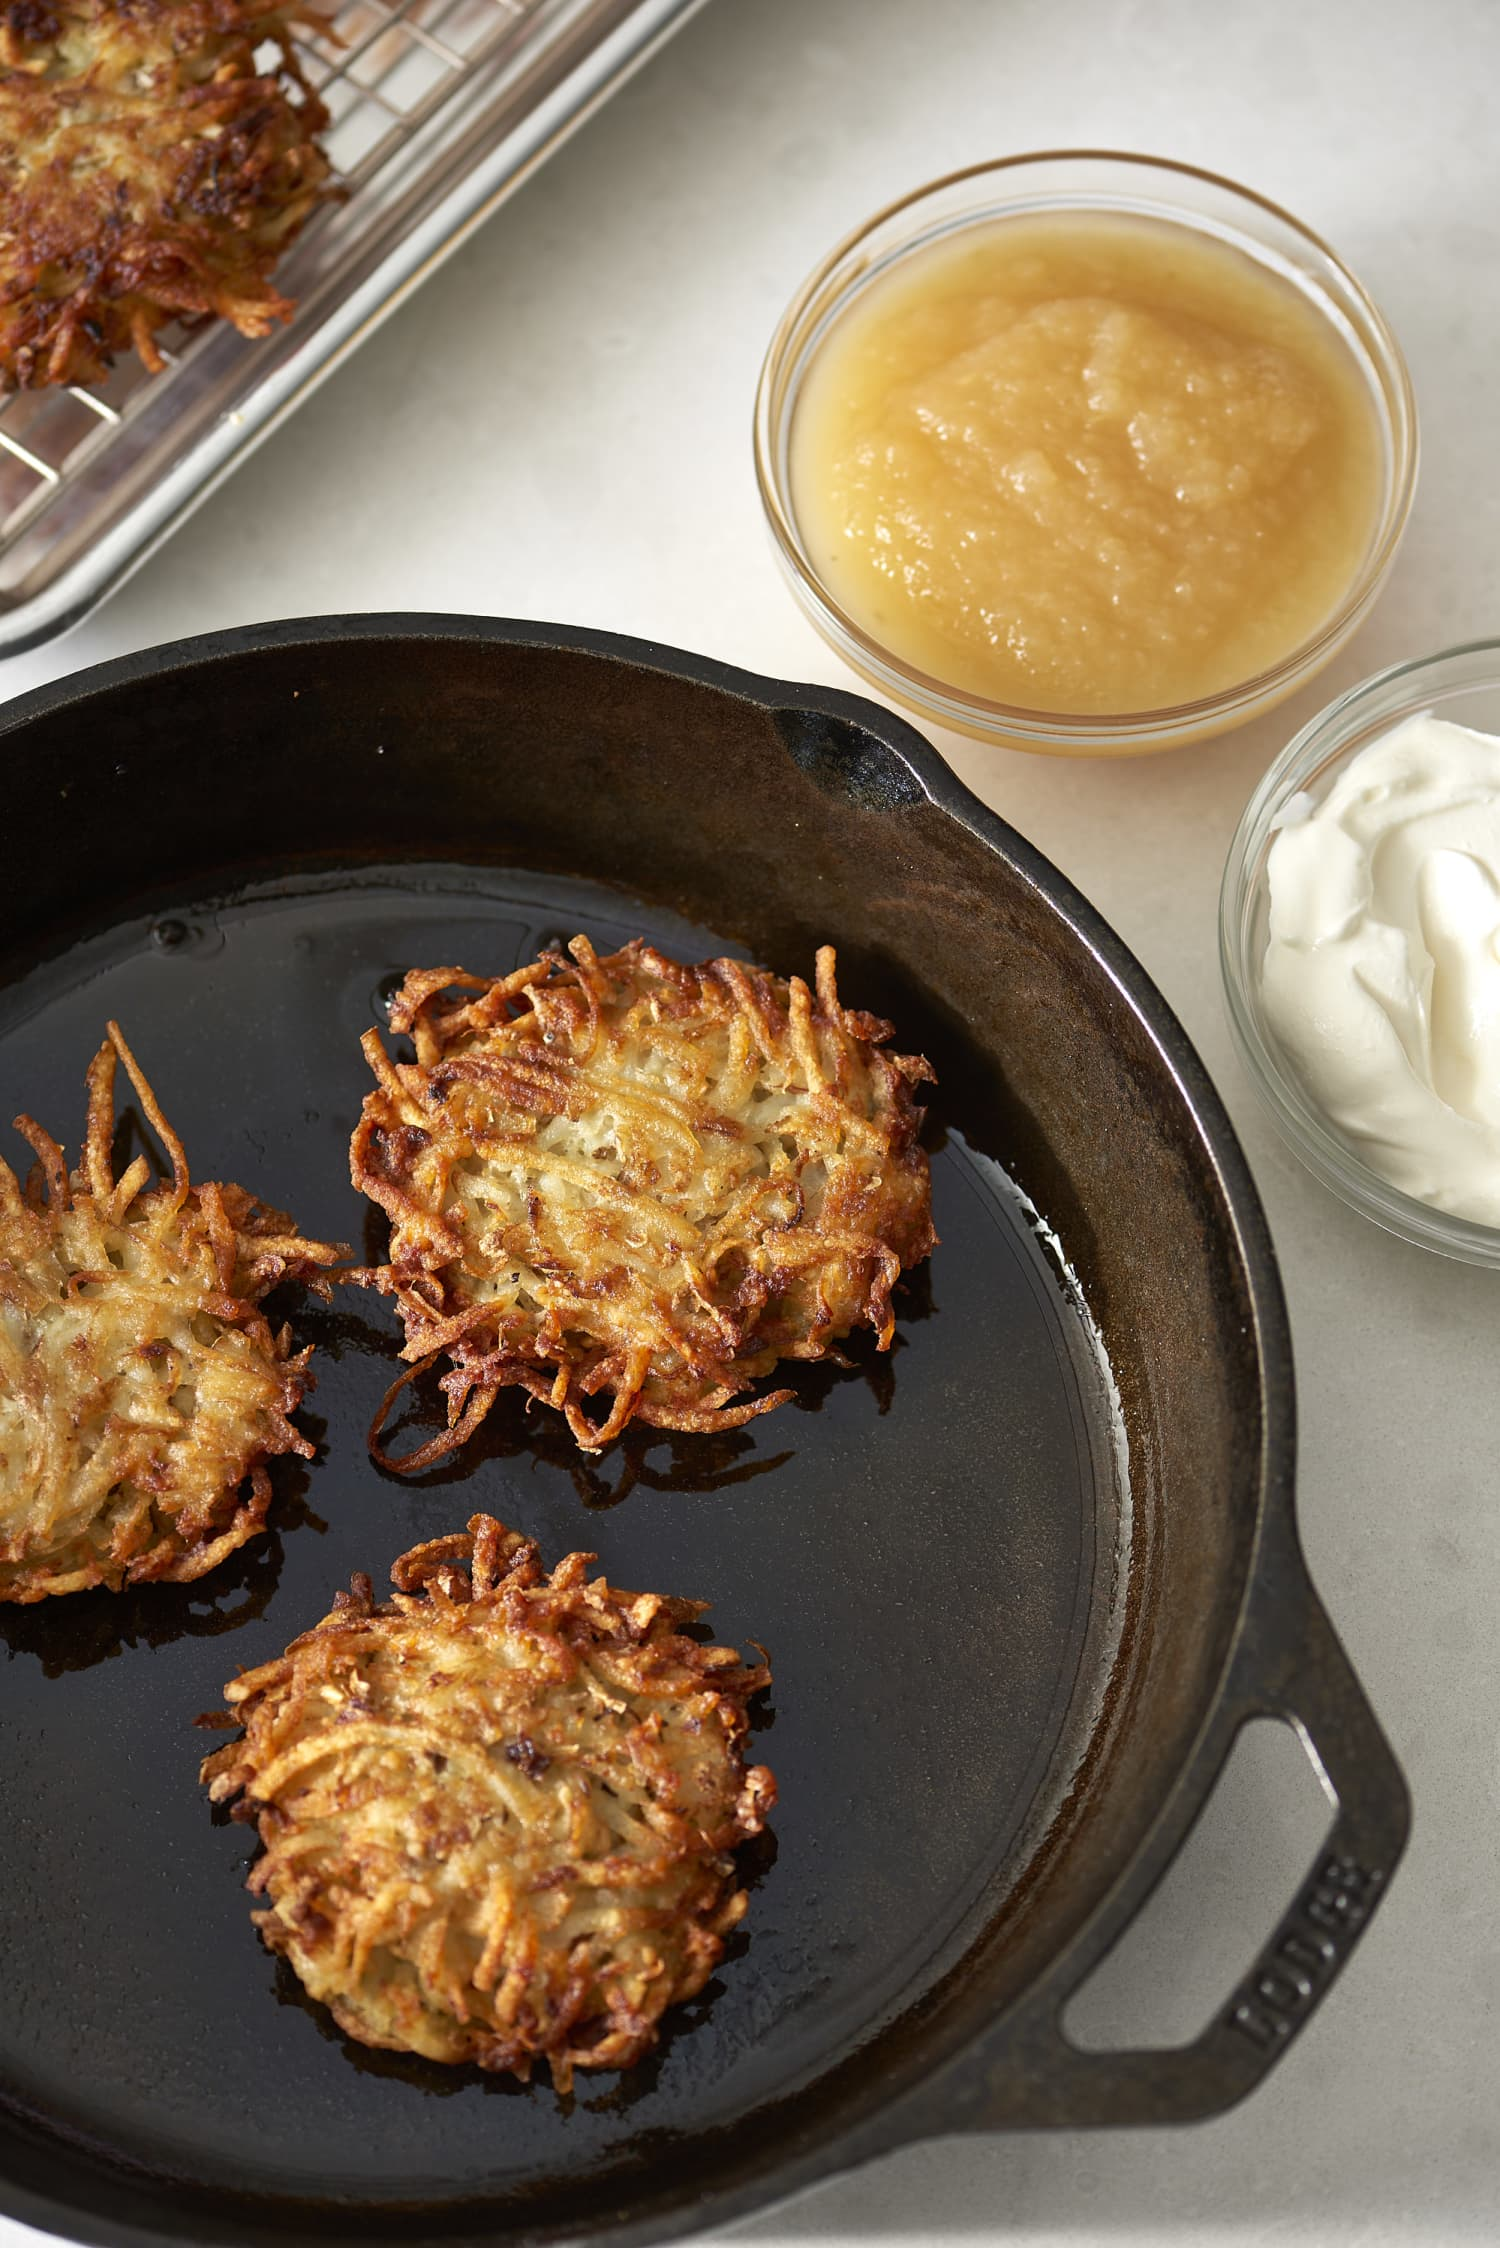 How To Make Classic Latkes: The Easiest, Simplest Method